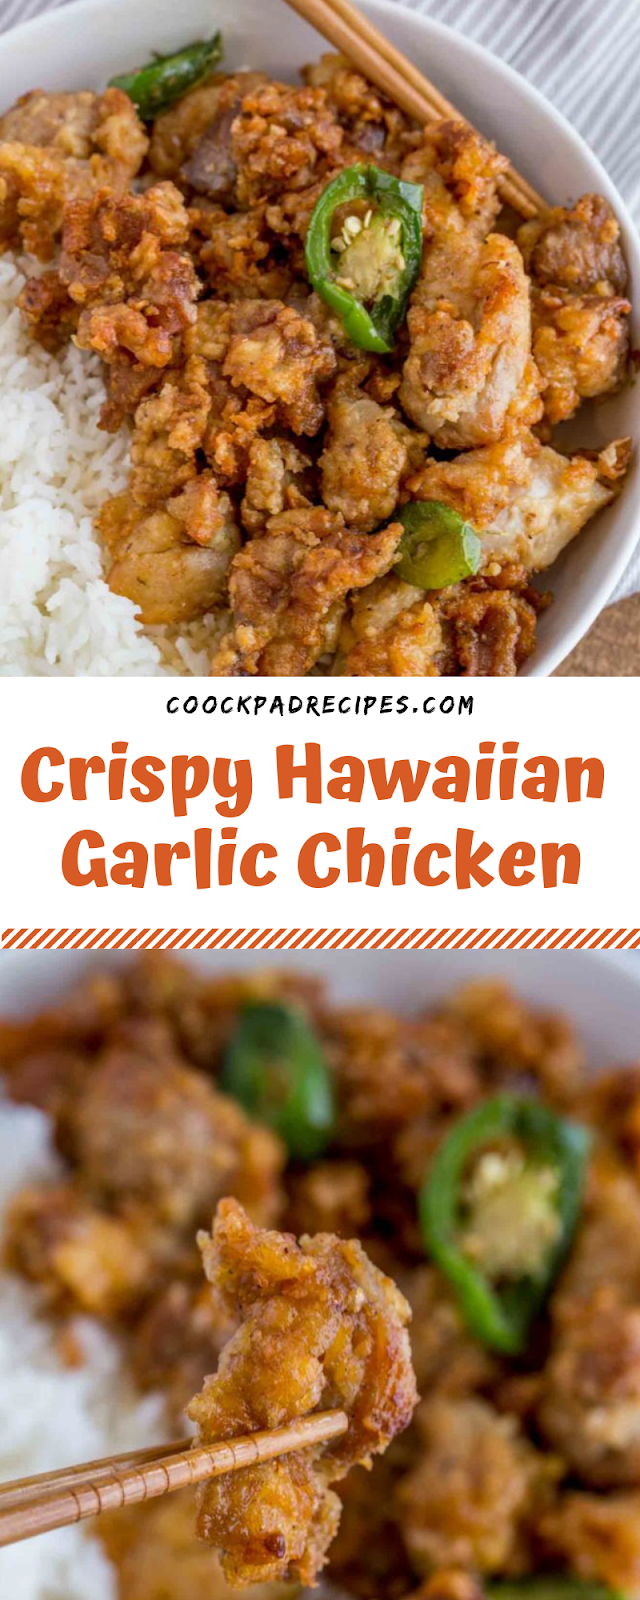 Crispy Hawaiian Garlic Chicken #christmas #dinner